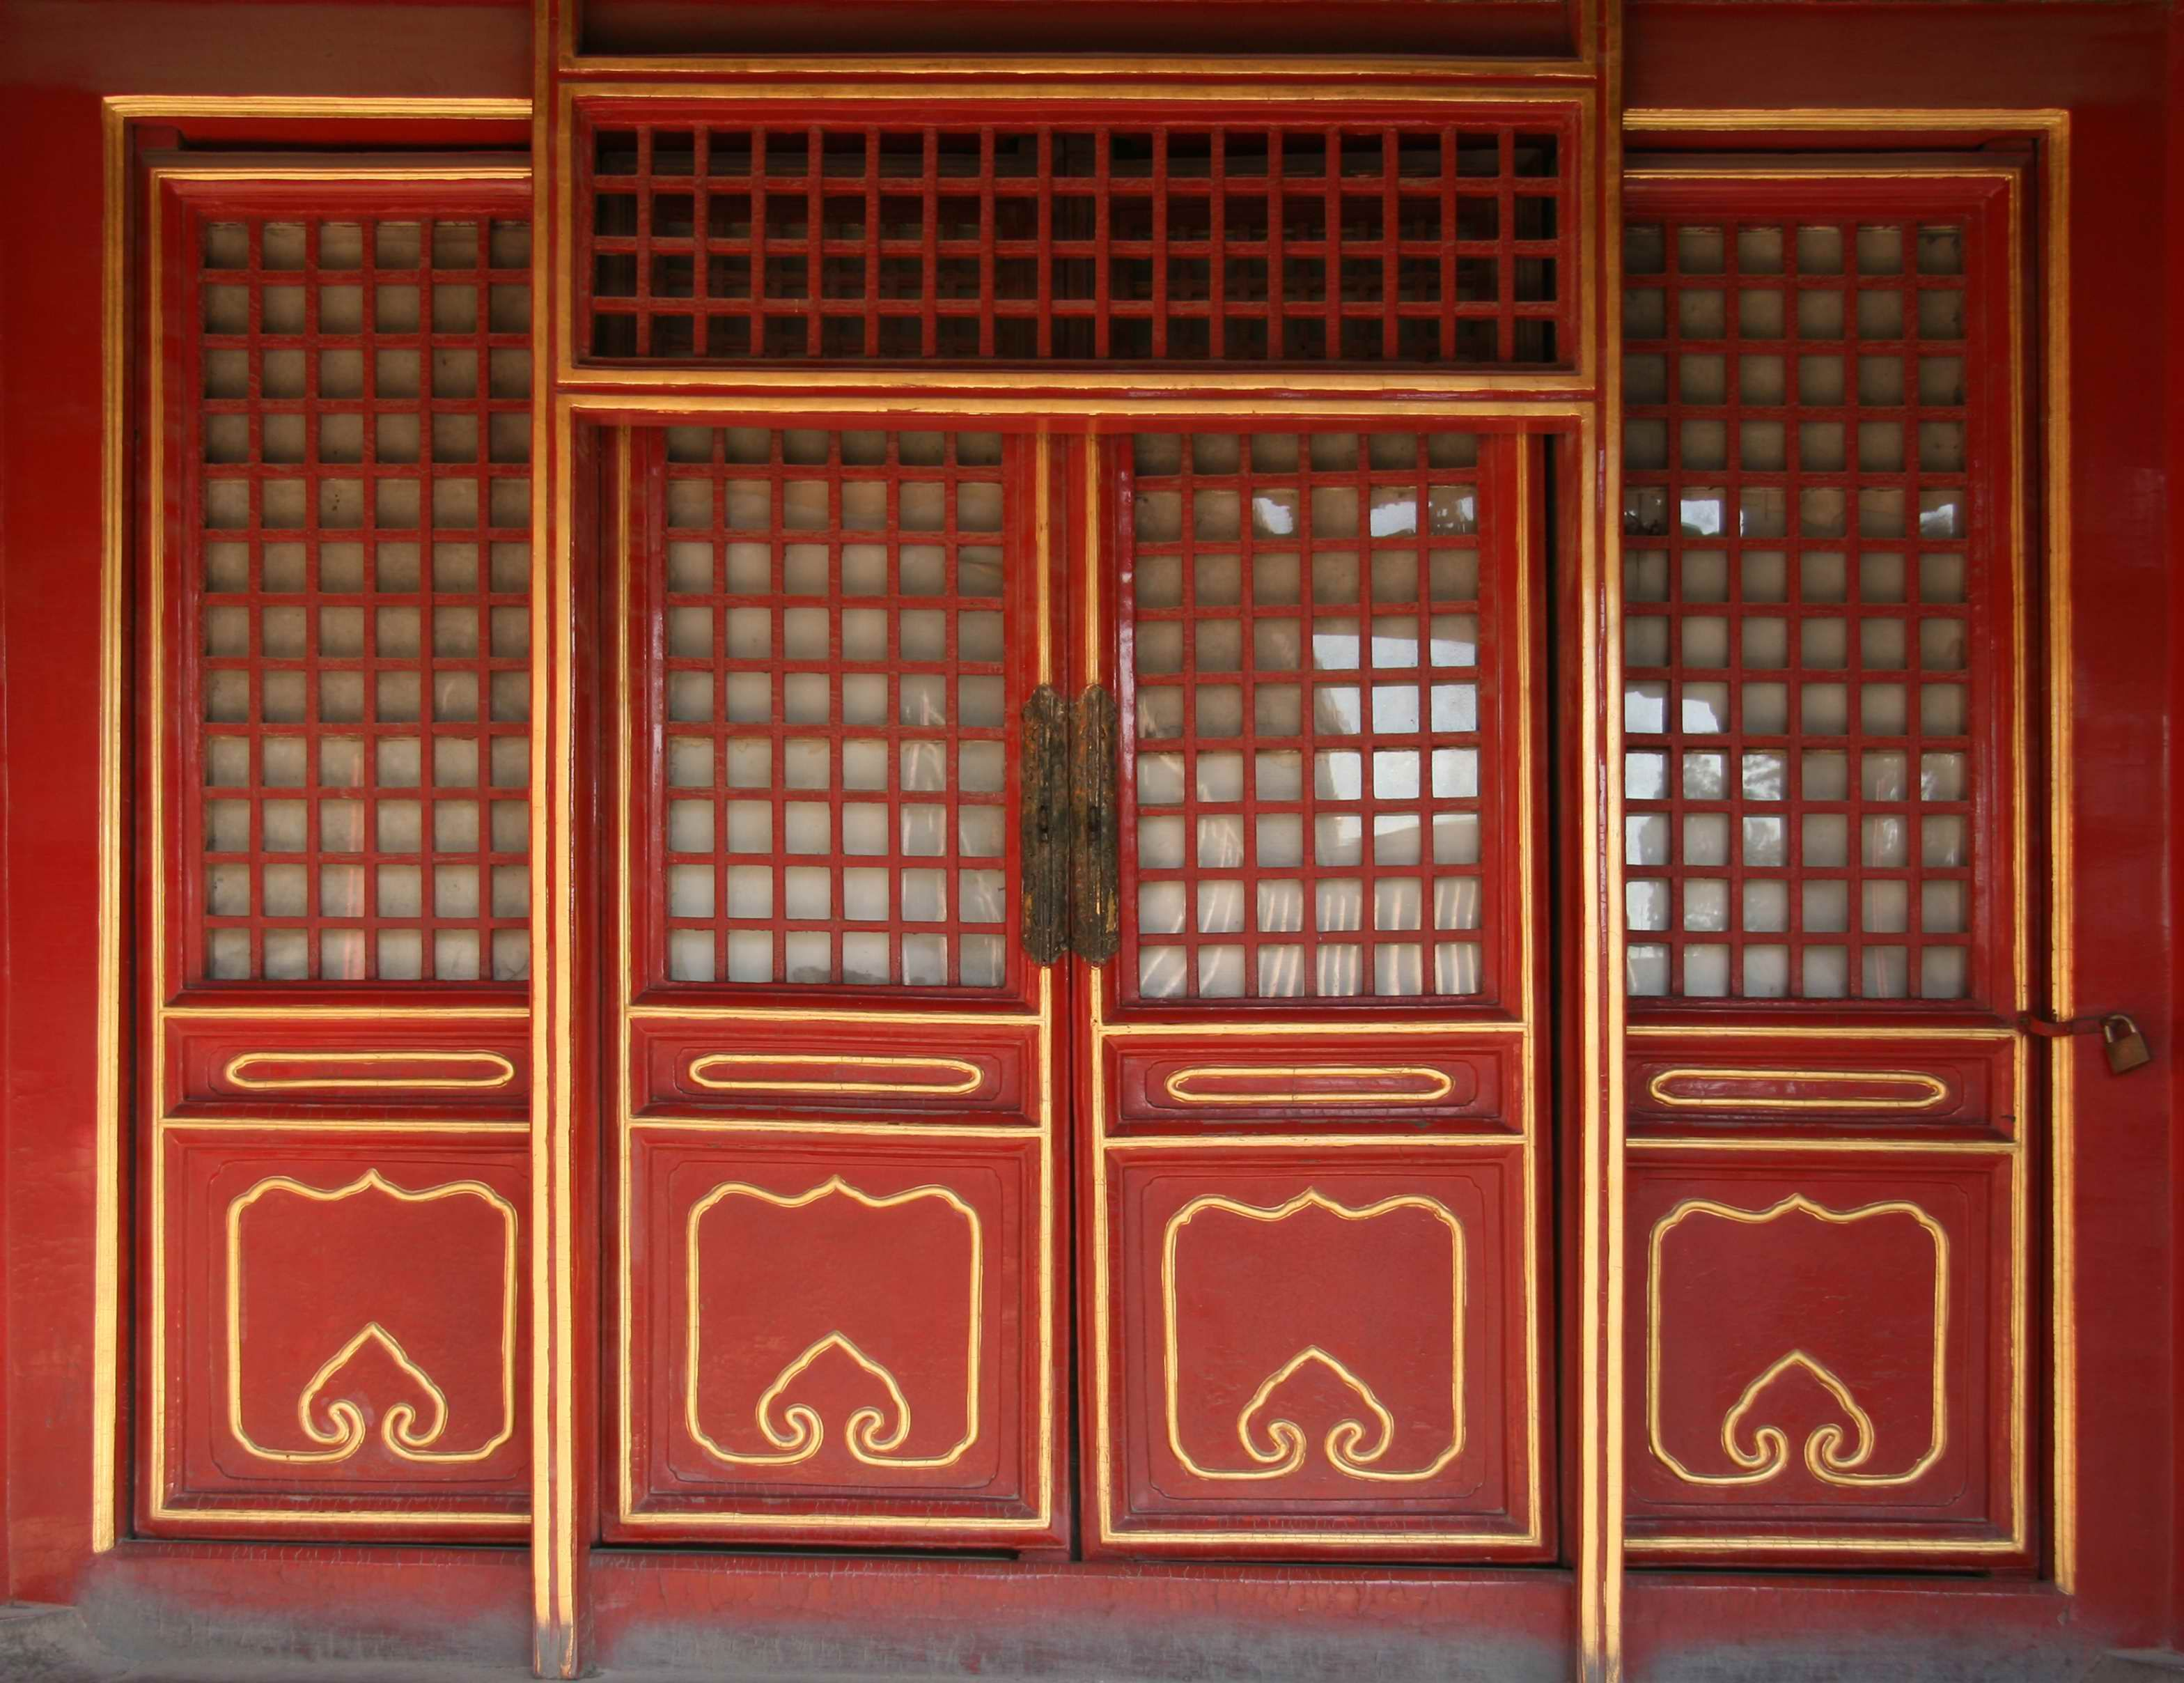 CHINESE ANTIQUE DOORS | Fanciful Latticework on Doors and Windows - China culture  sc 1 st  Pinterest & CHINESE ANTIQUE DOORS | Fanciful Latticework on Doors and Windows ...